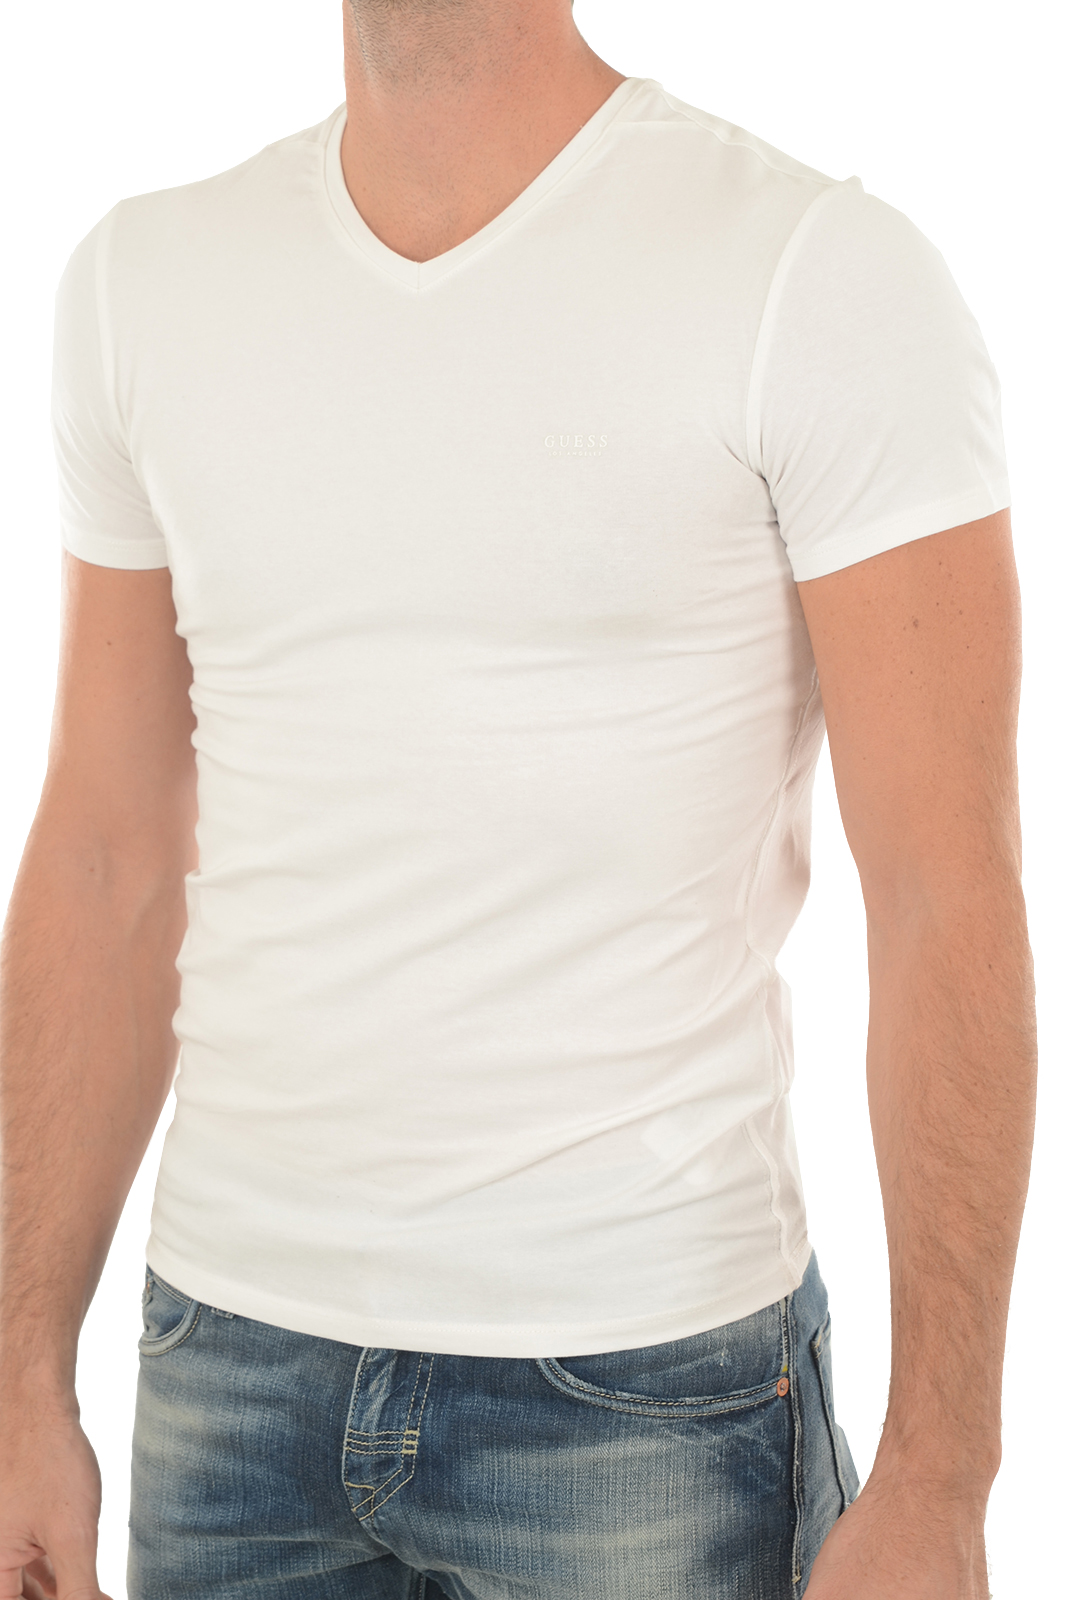 Tee-shirts manches courtes  Guess jeans M73I55 J1300 A000 BLANC